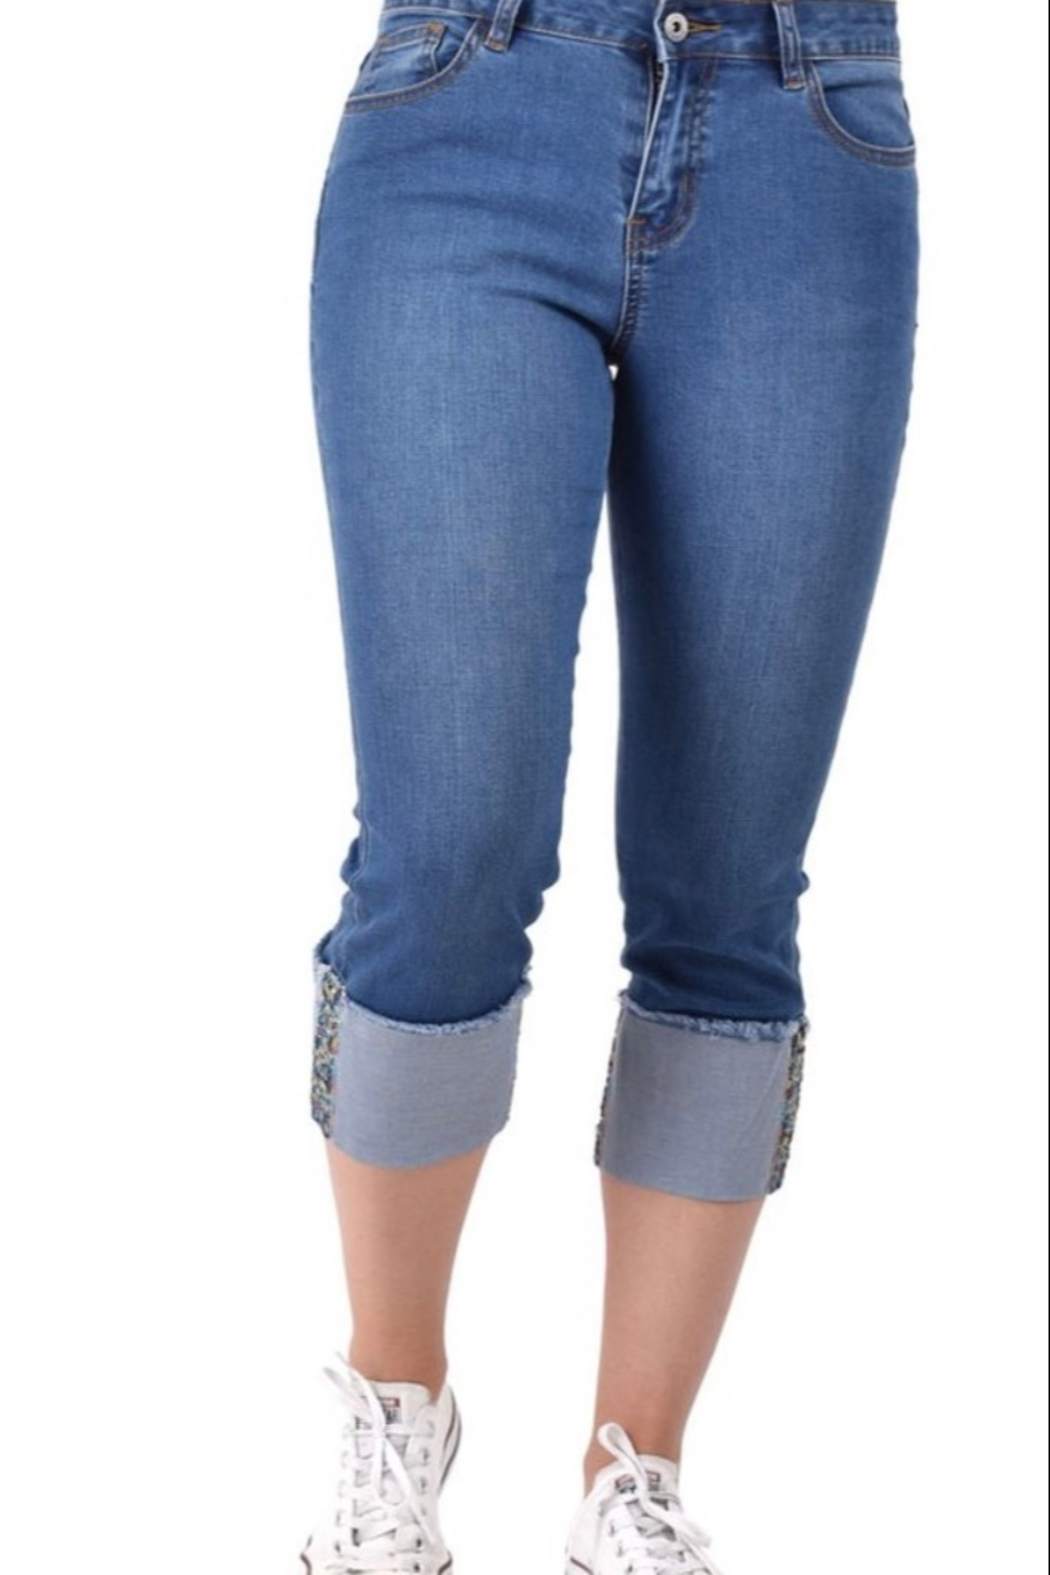 Ethyl Garden Grove Cropped jean with multi-colored embellishment on hem. - Main Image